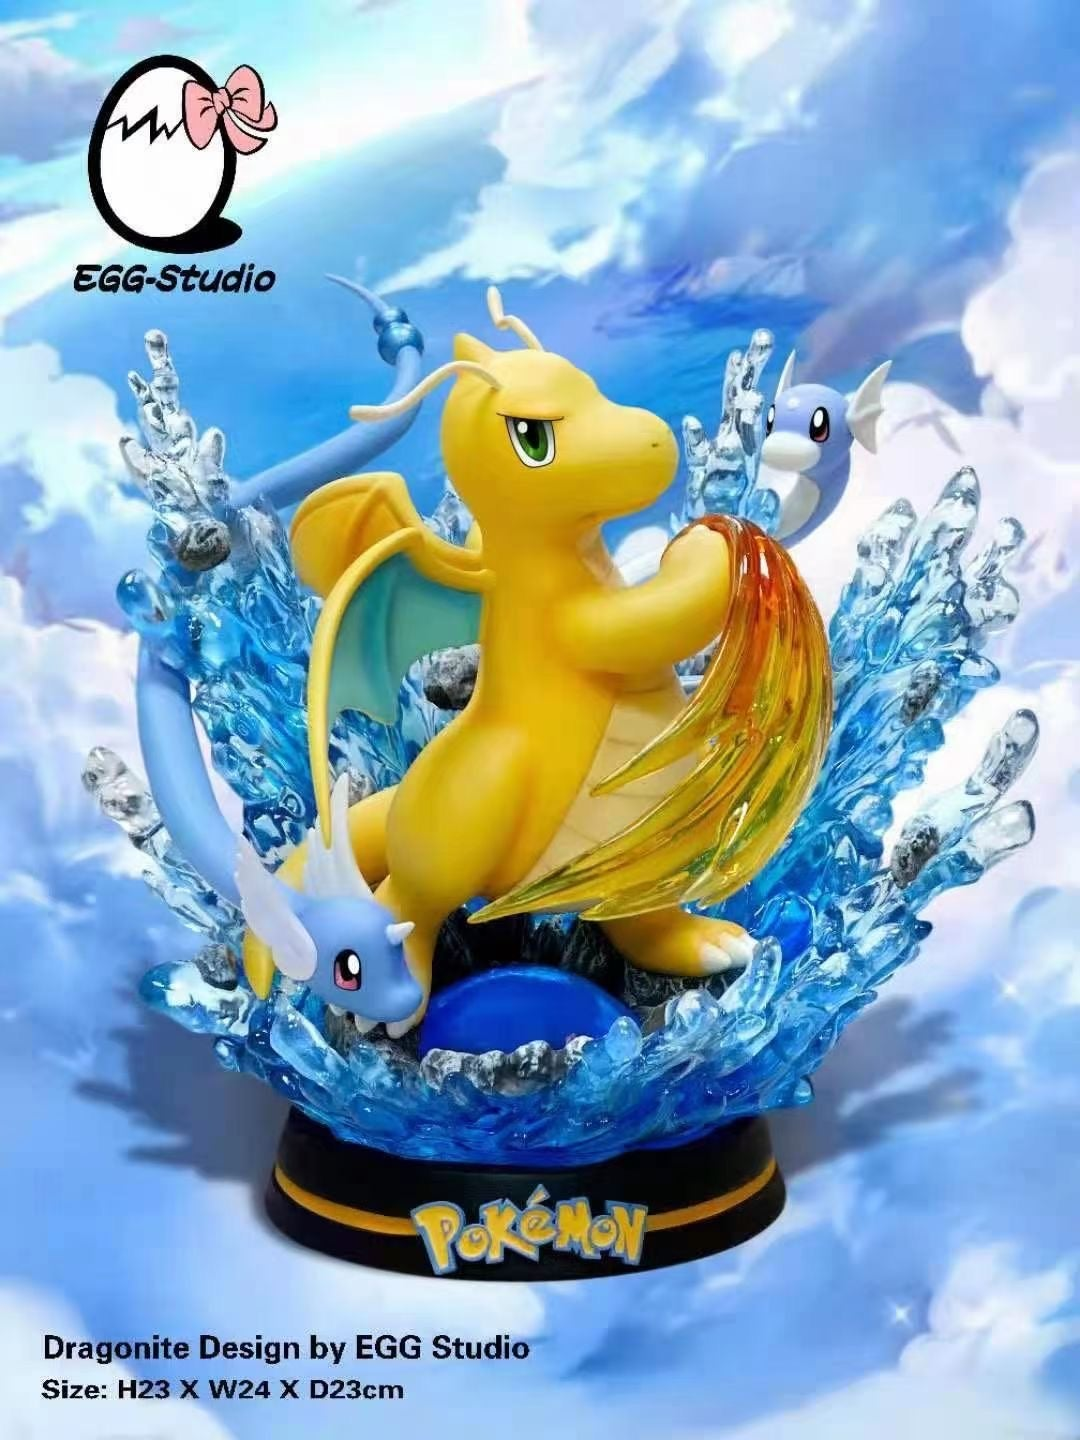 Image of [Pre-Order]Pokemon Egg Studio Dragonite Resin Statue